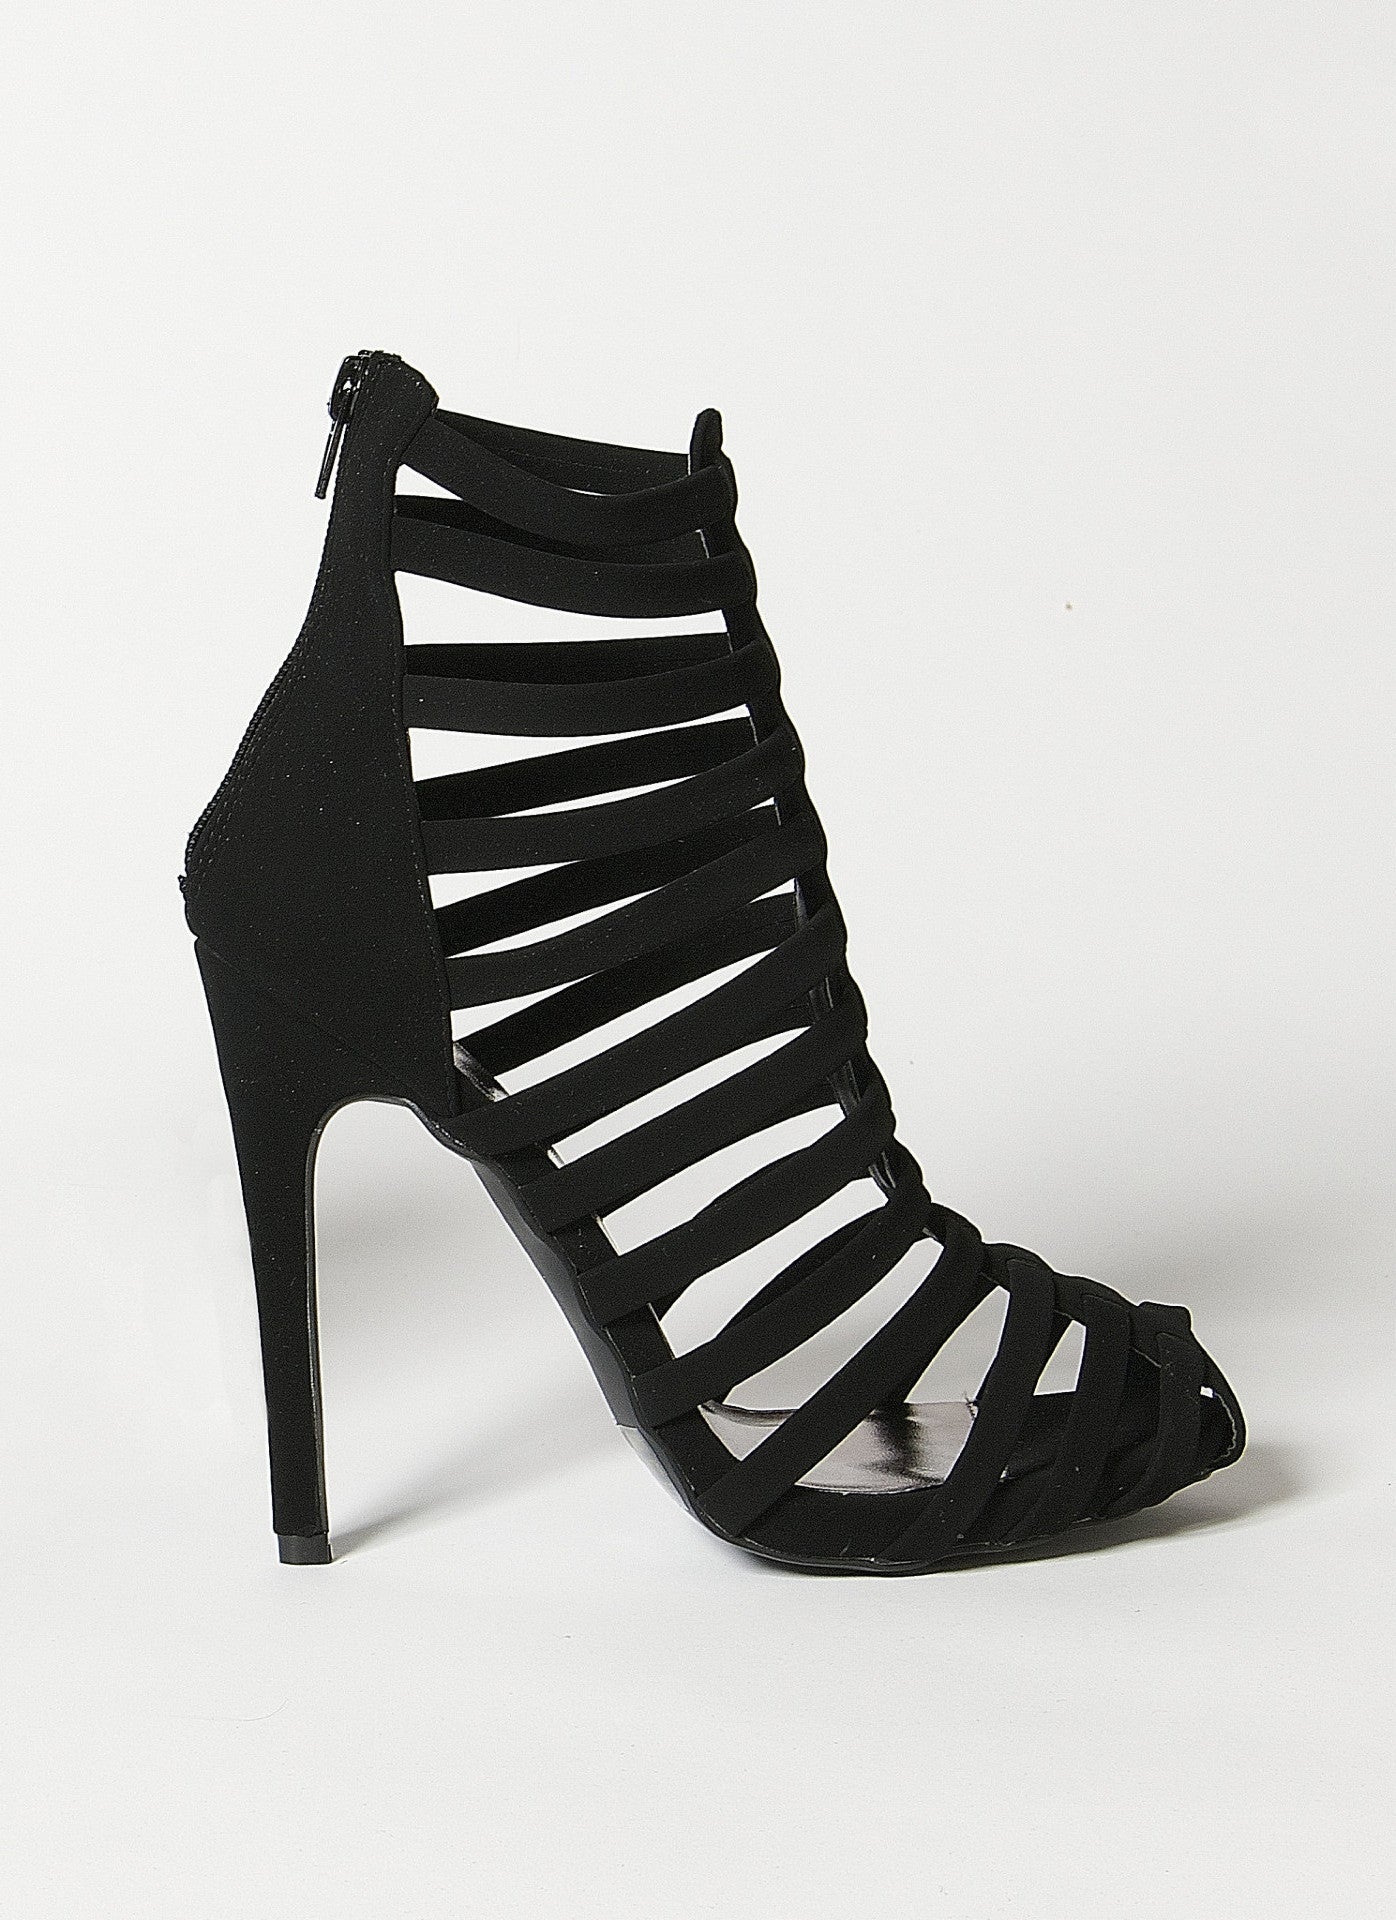 Glee Nobuckle Caged Heel 6, Shoes - Fashion Trend LA, Fashion Trend LA  - 1